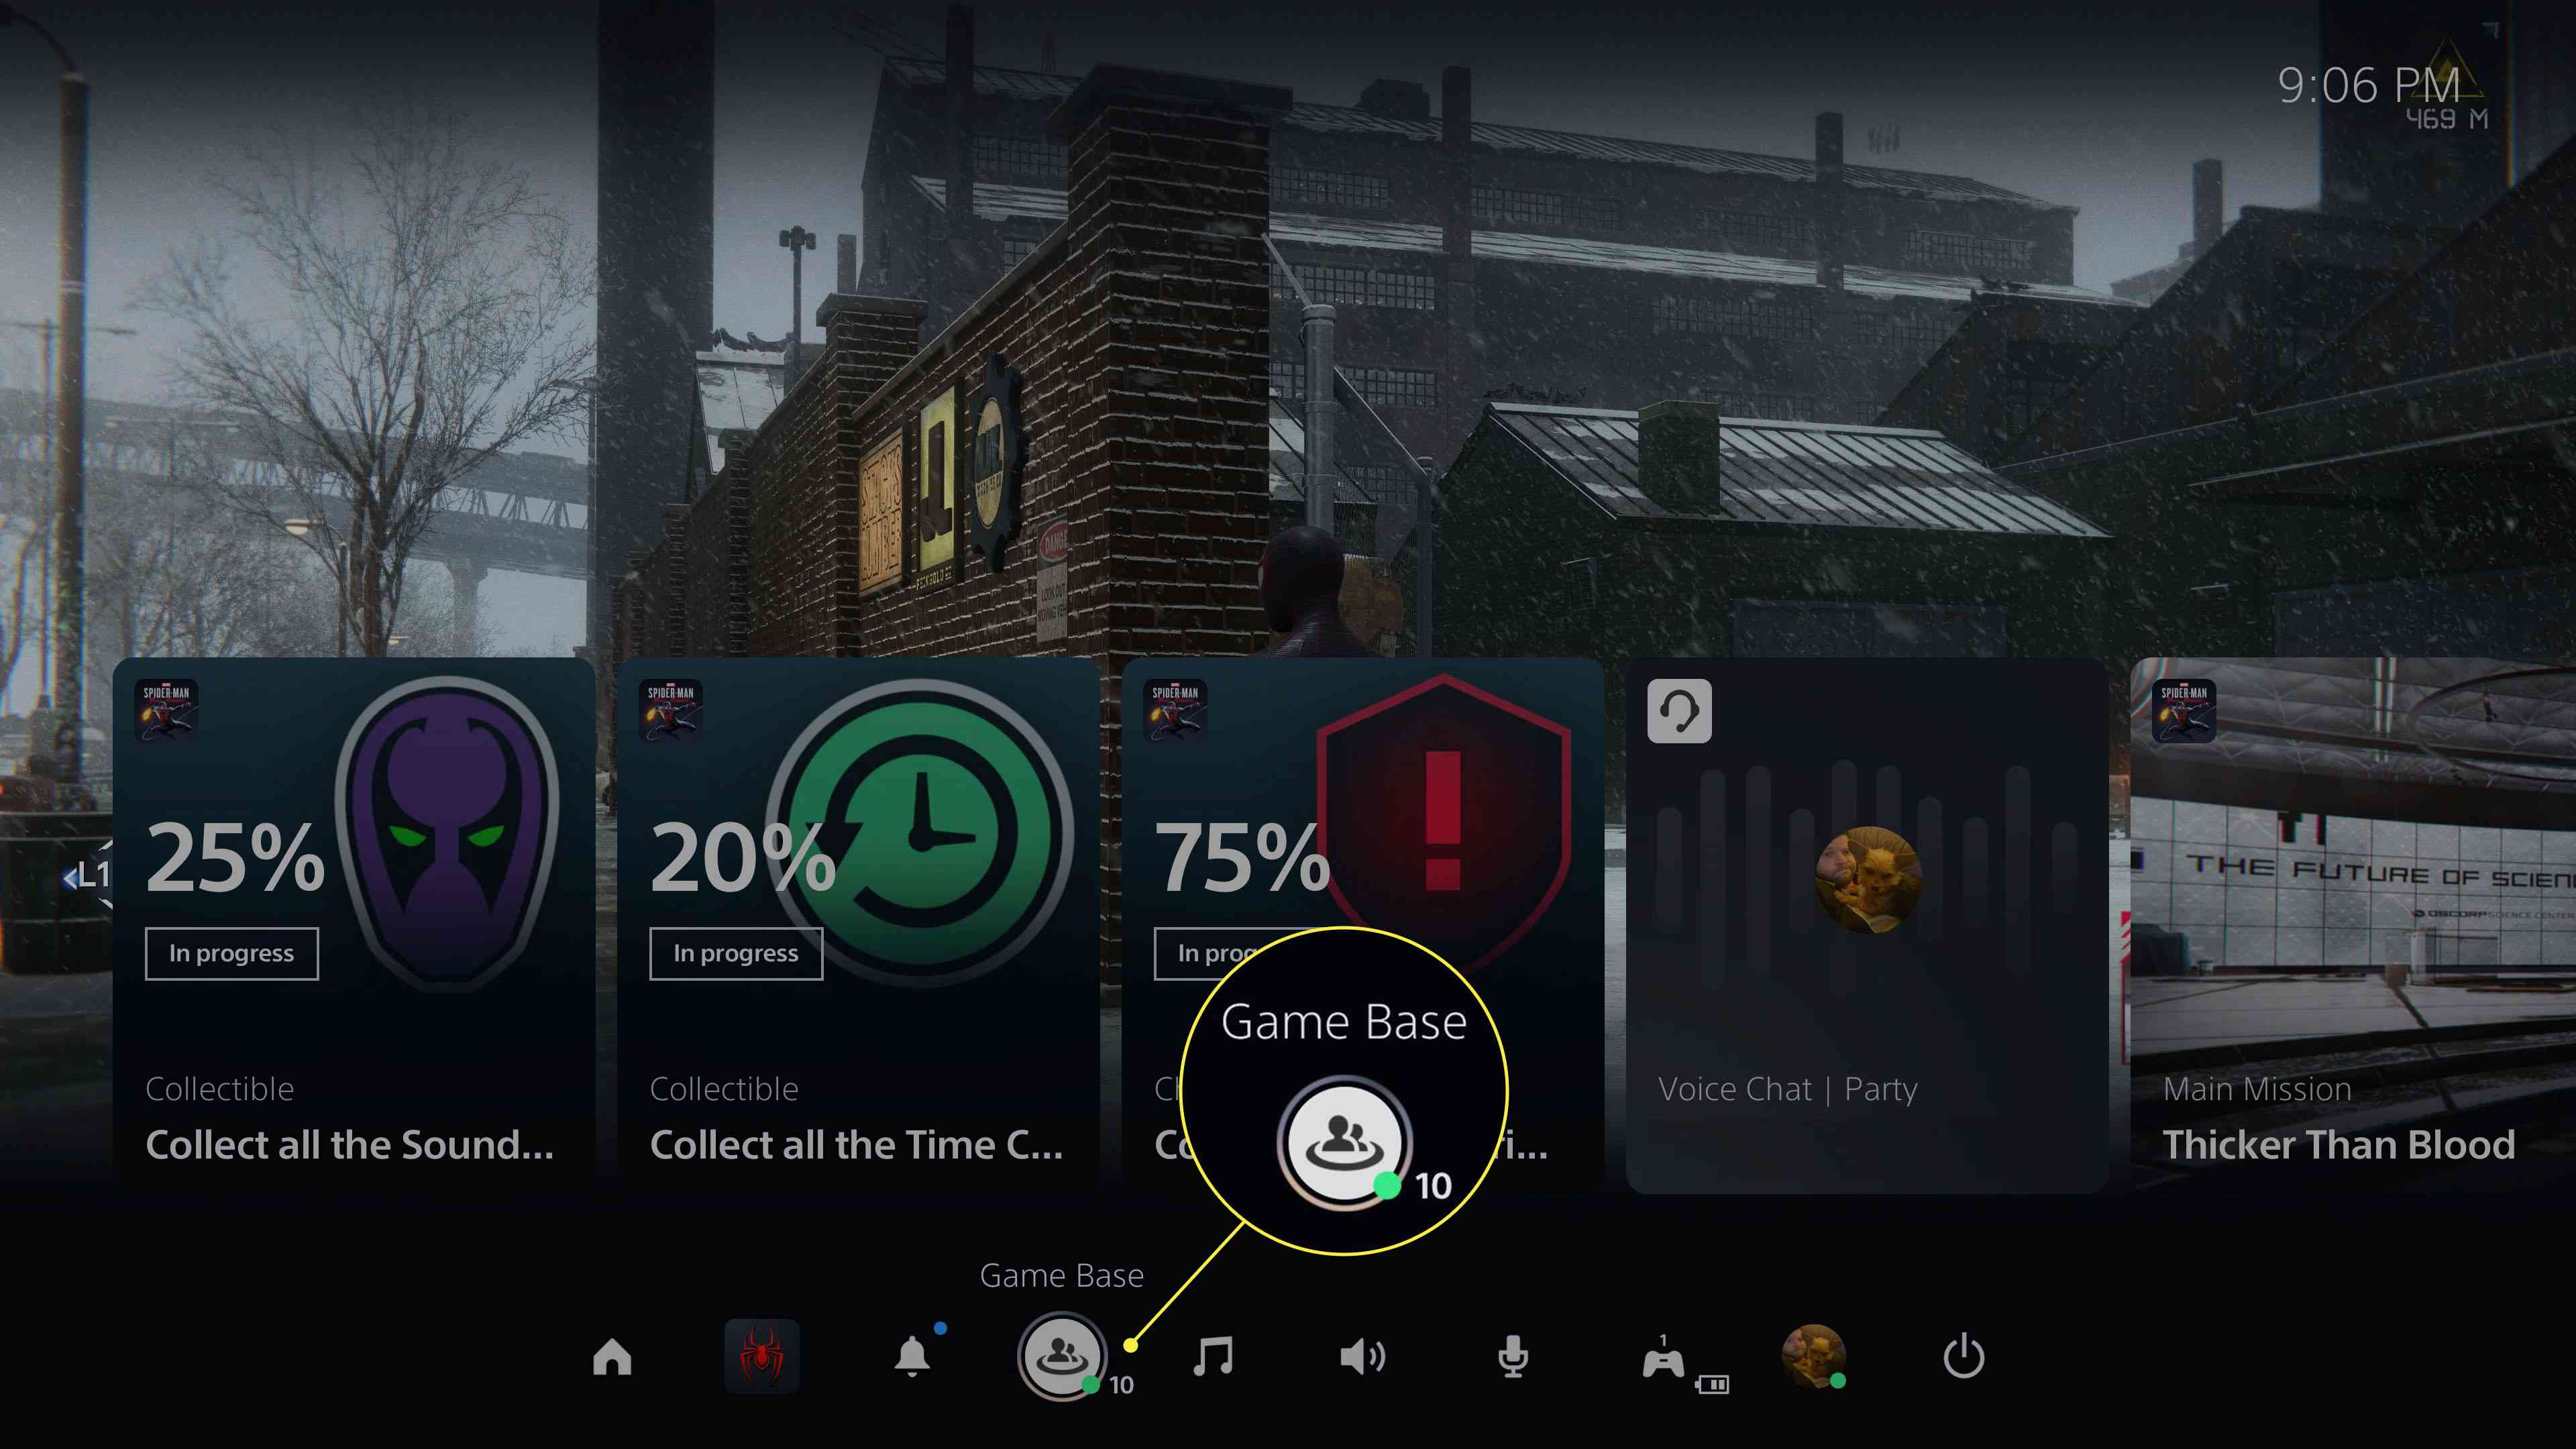 The Game Base option on PS5